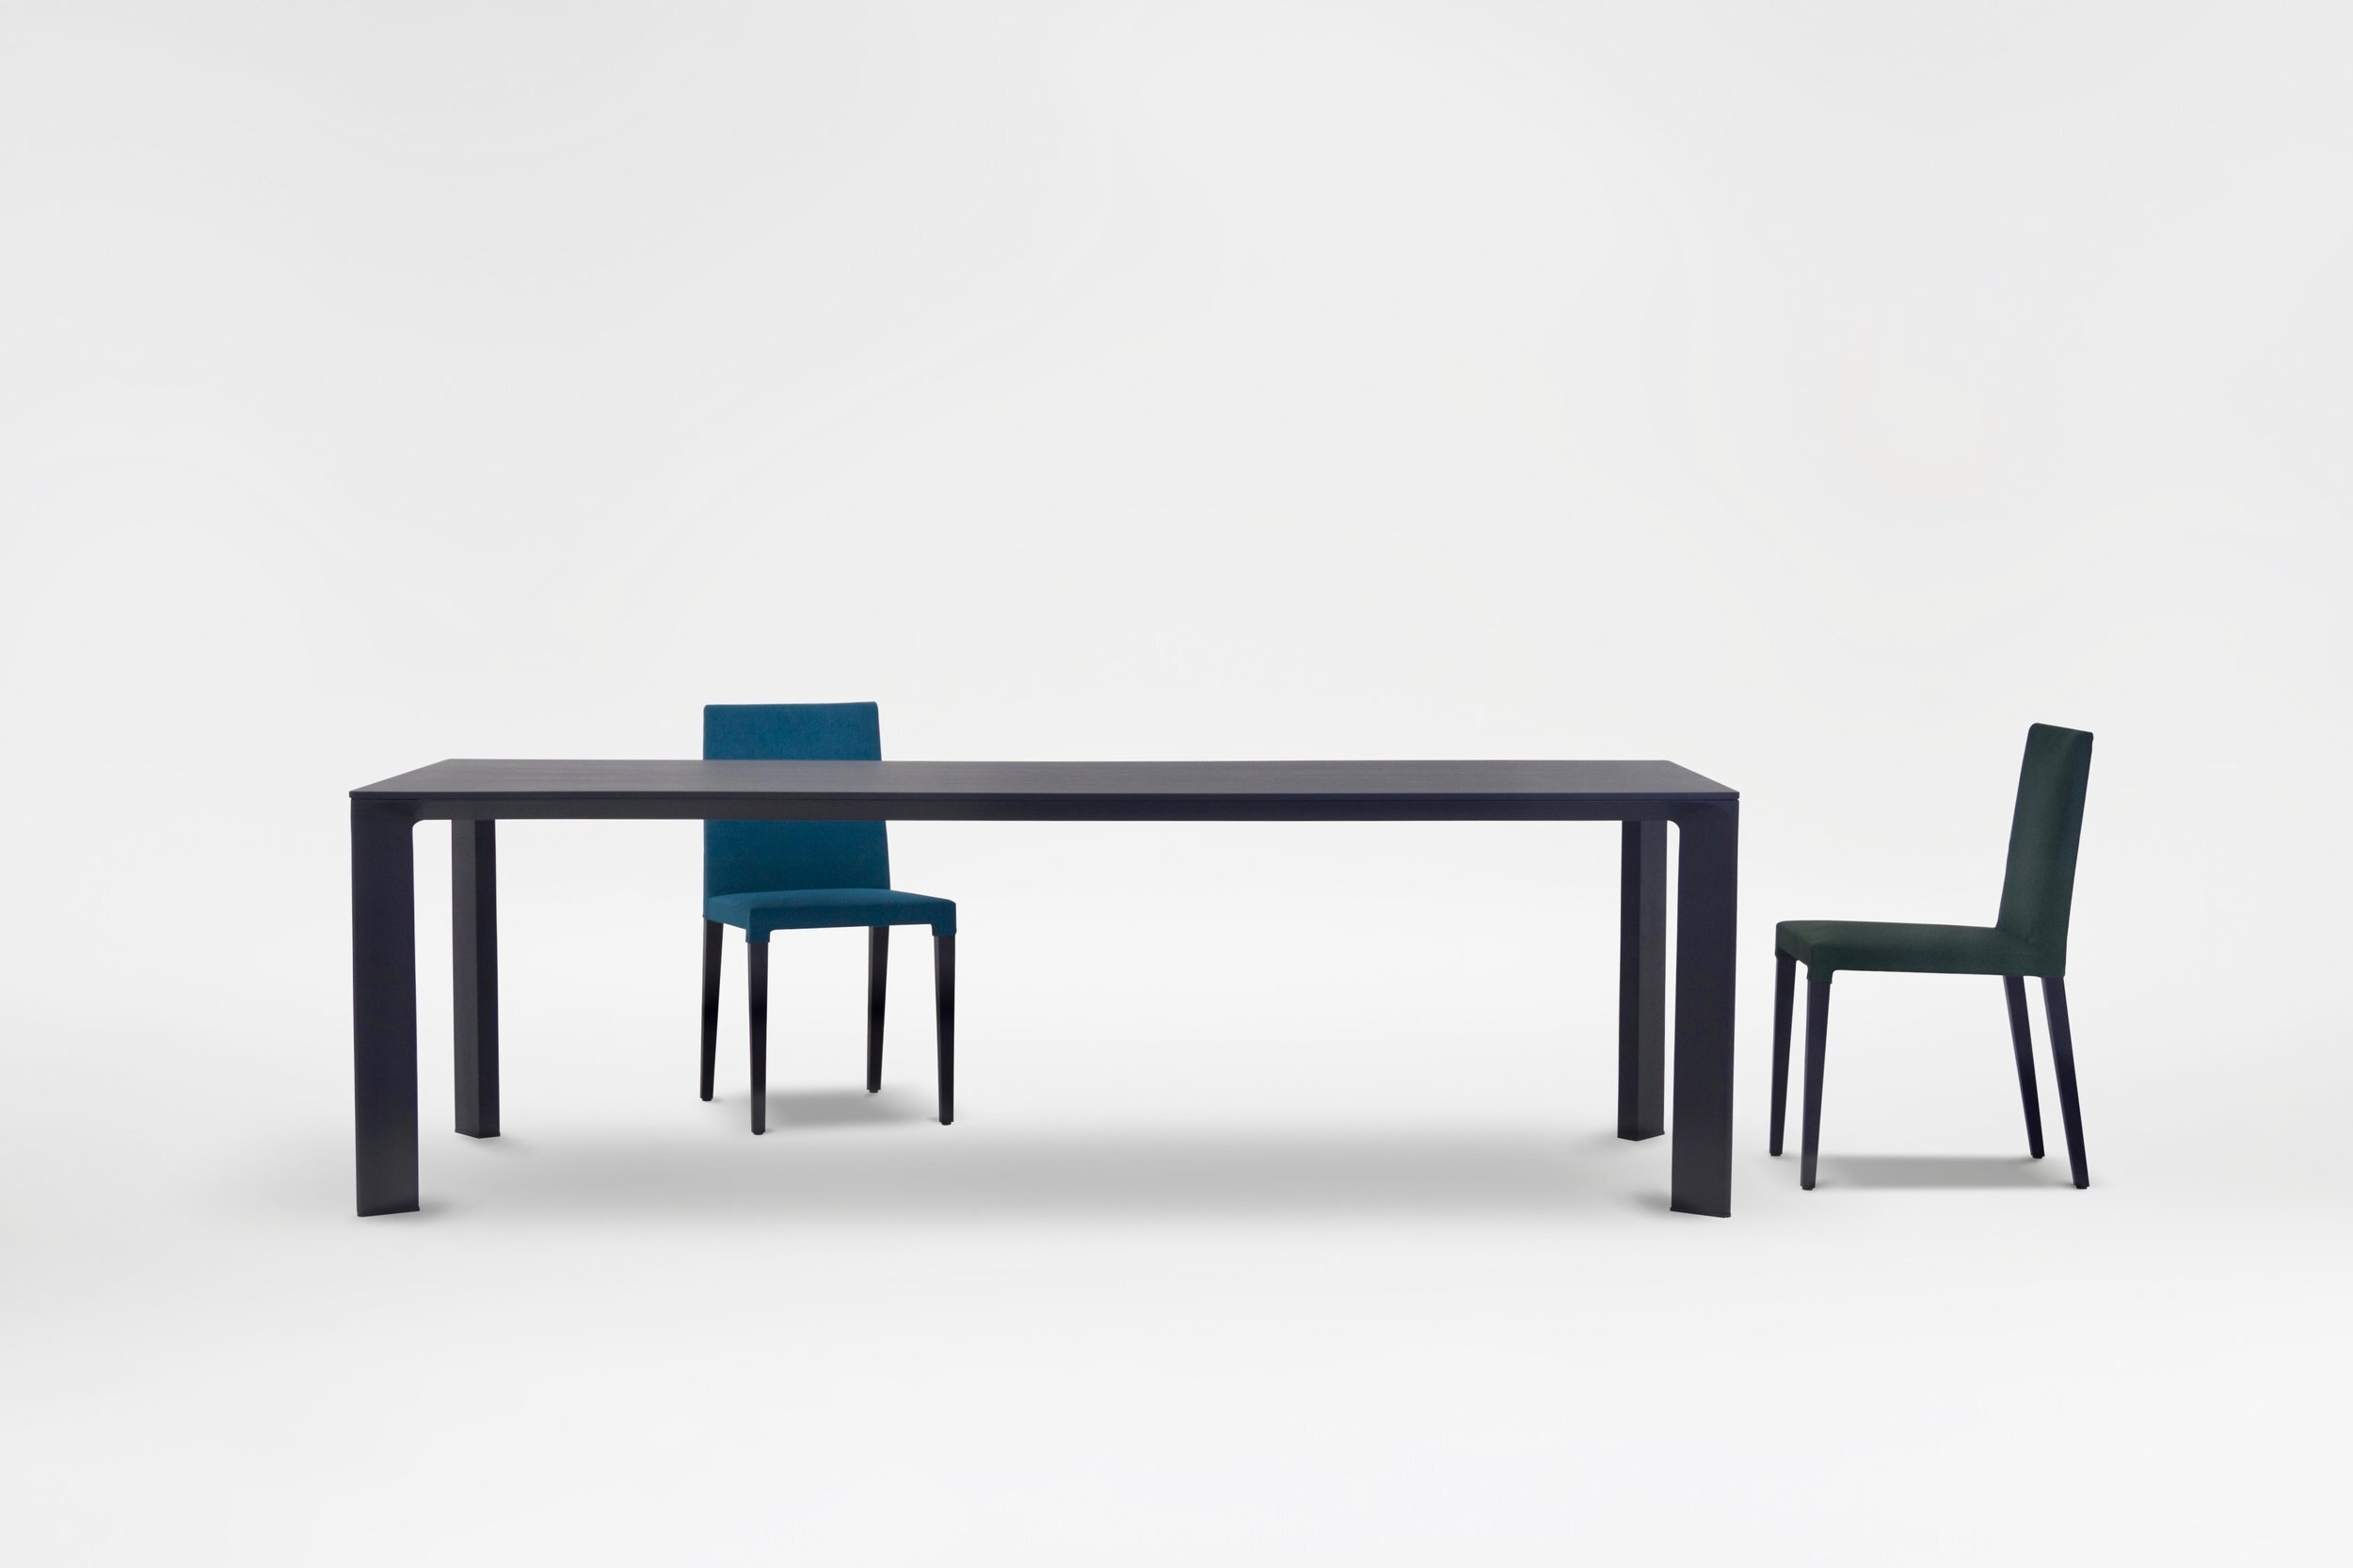 Joint dining table - Perpetually modern, Joint Dining Table exhibits a striking stance that is sculpturally stunning from every angle.